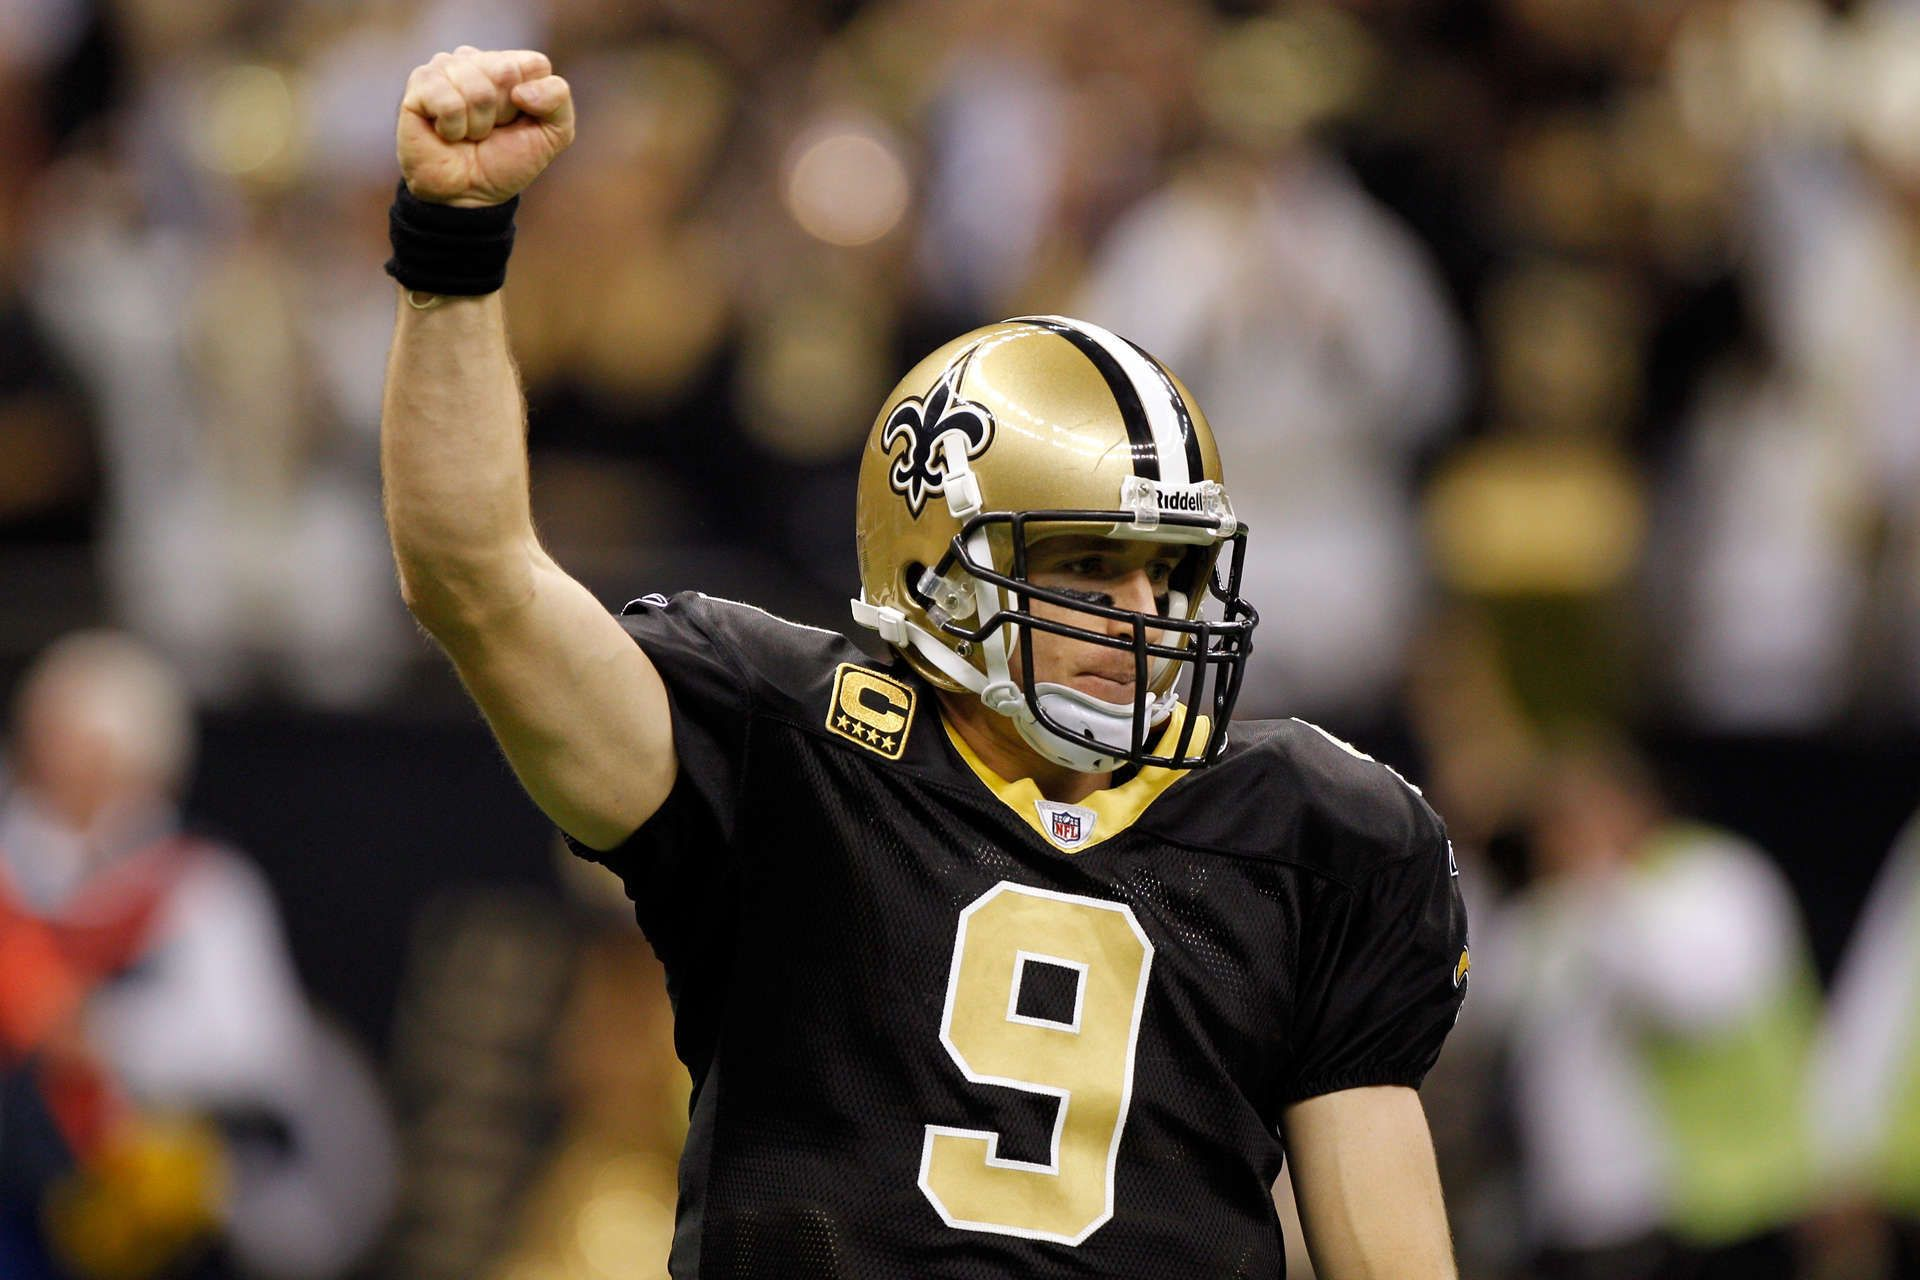 Download Drew Brees Saints in high quality wallpaper And You can 1920x1280